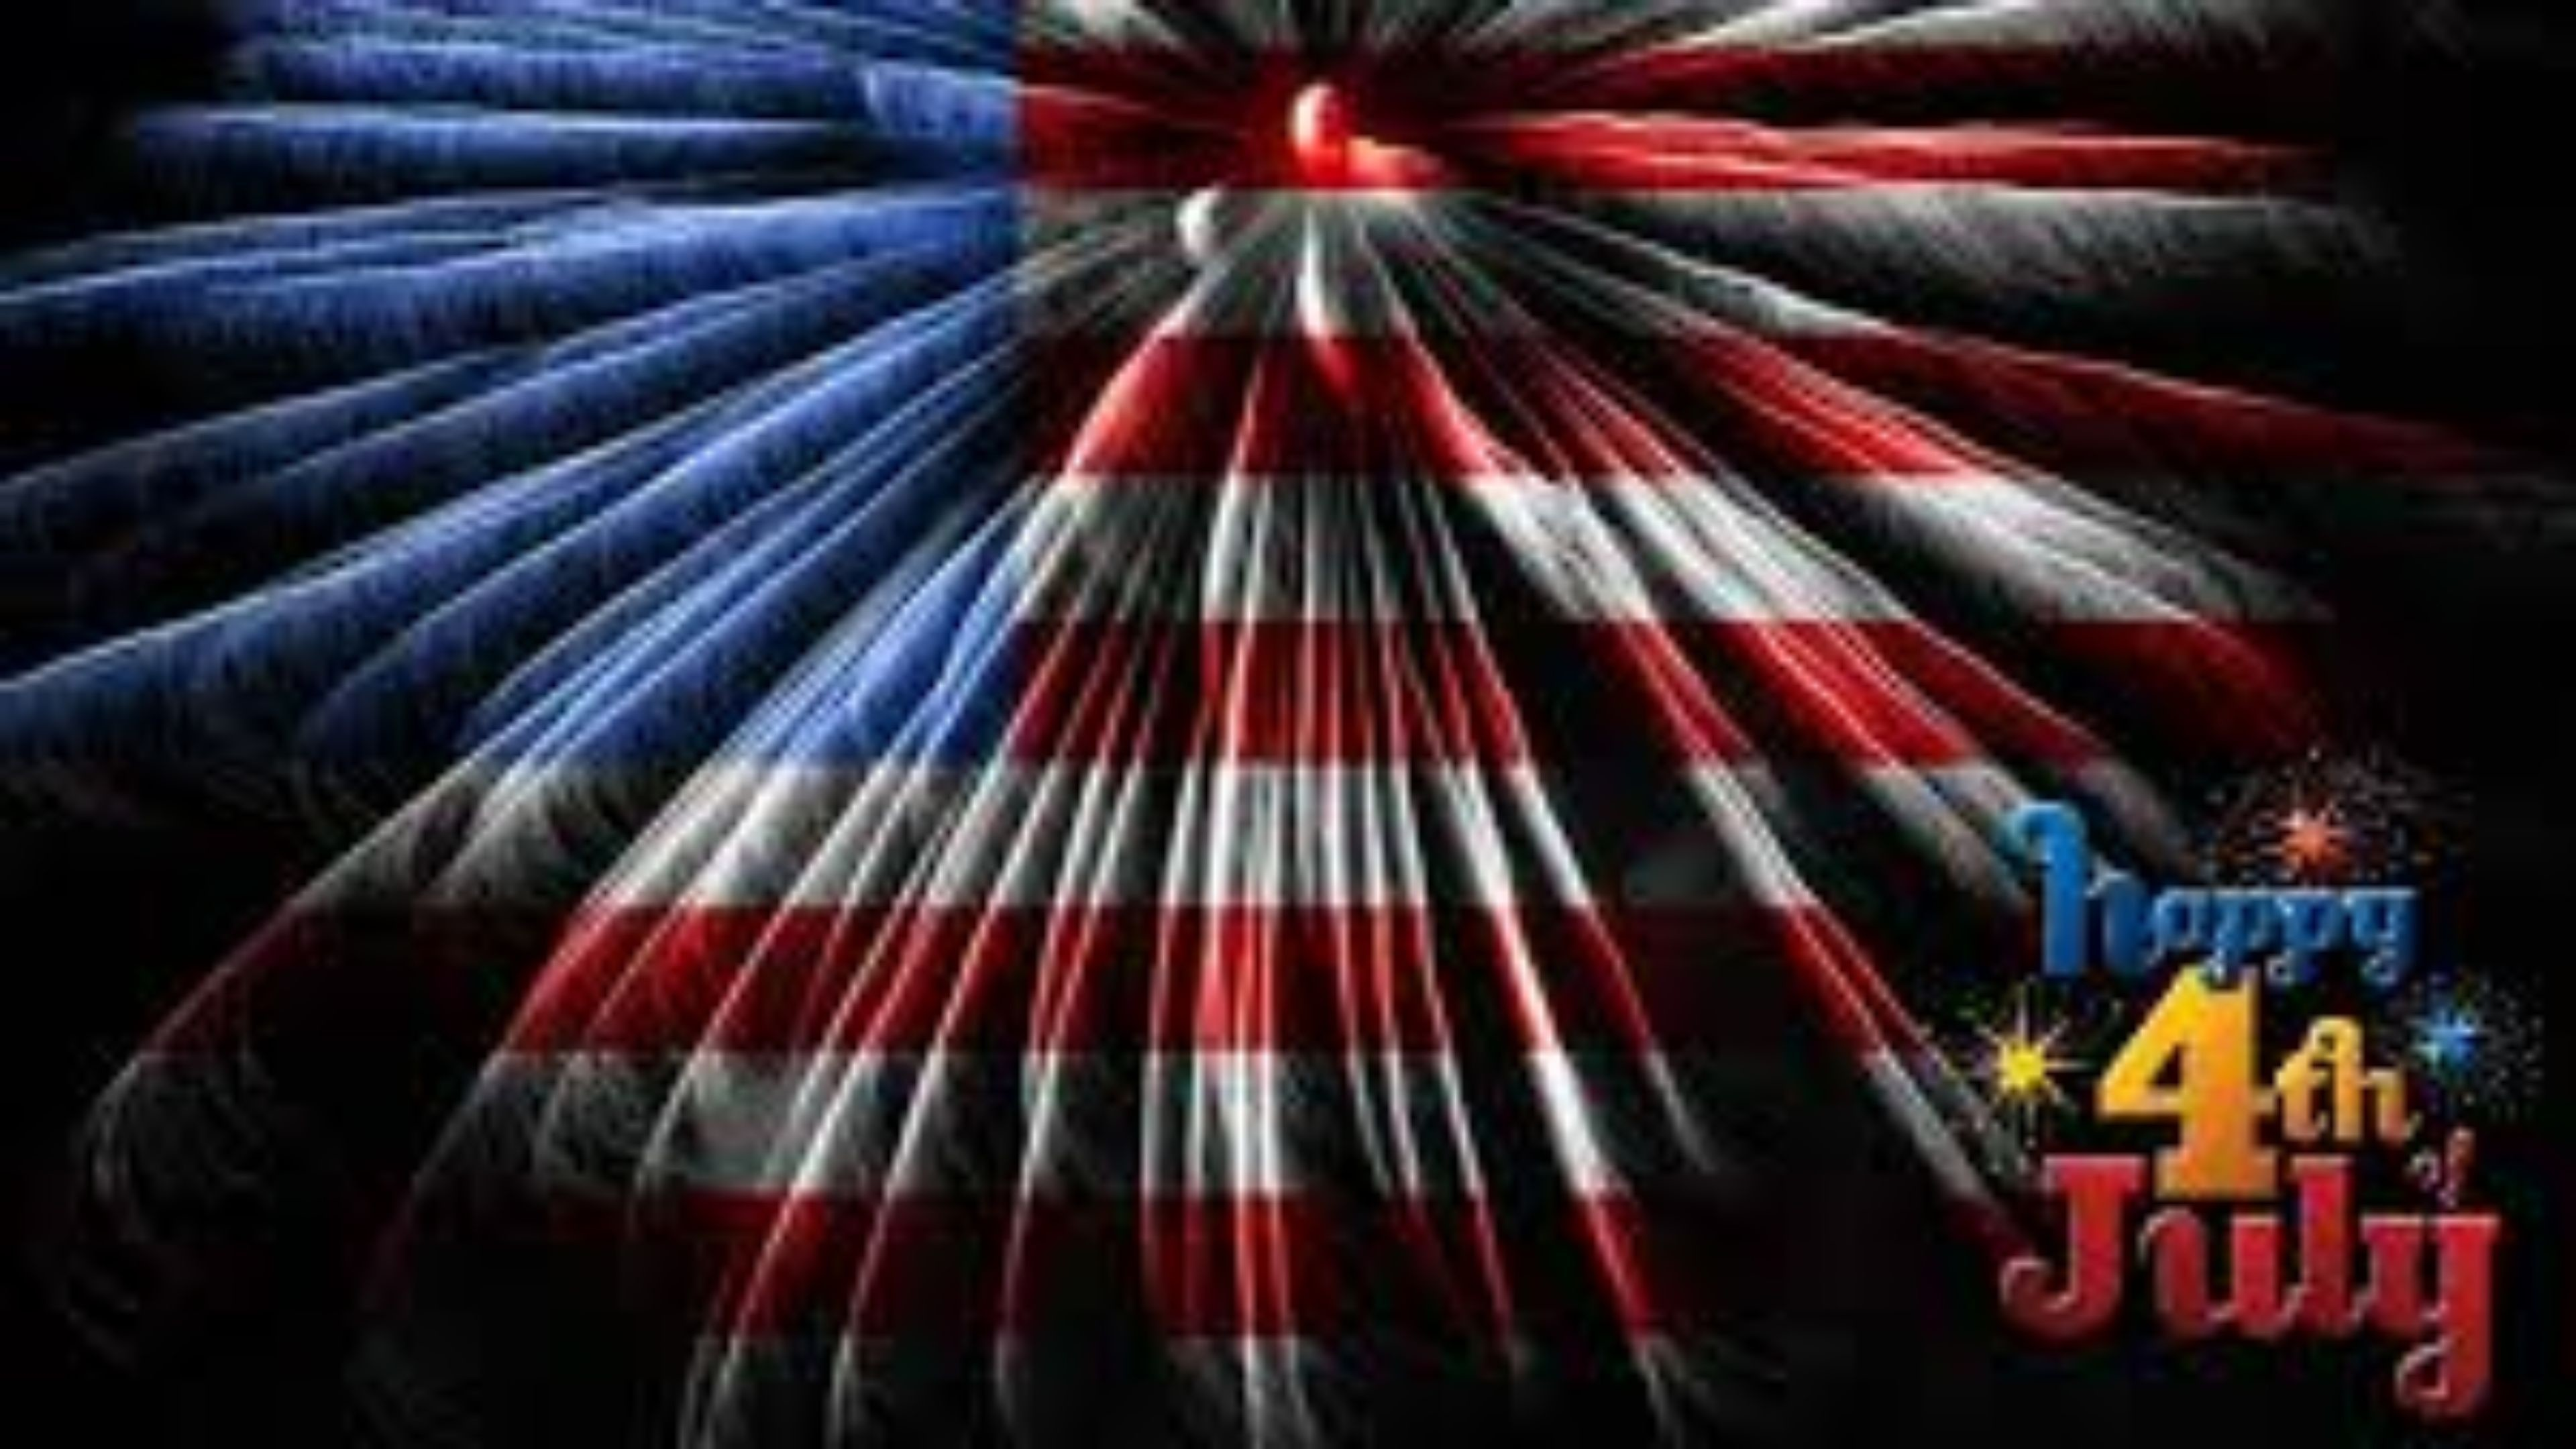 … Perfect 4Th Of July Live Wallpaper full hd car wallpapers 1080p free  download Wallpapers For Android